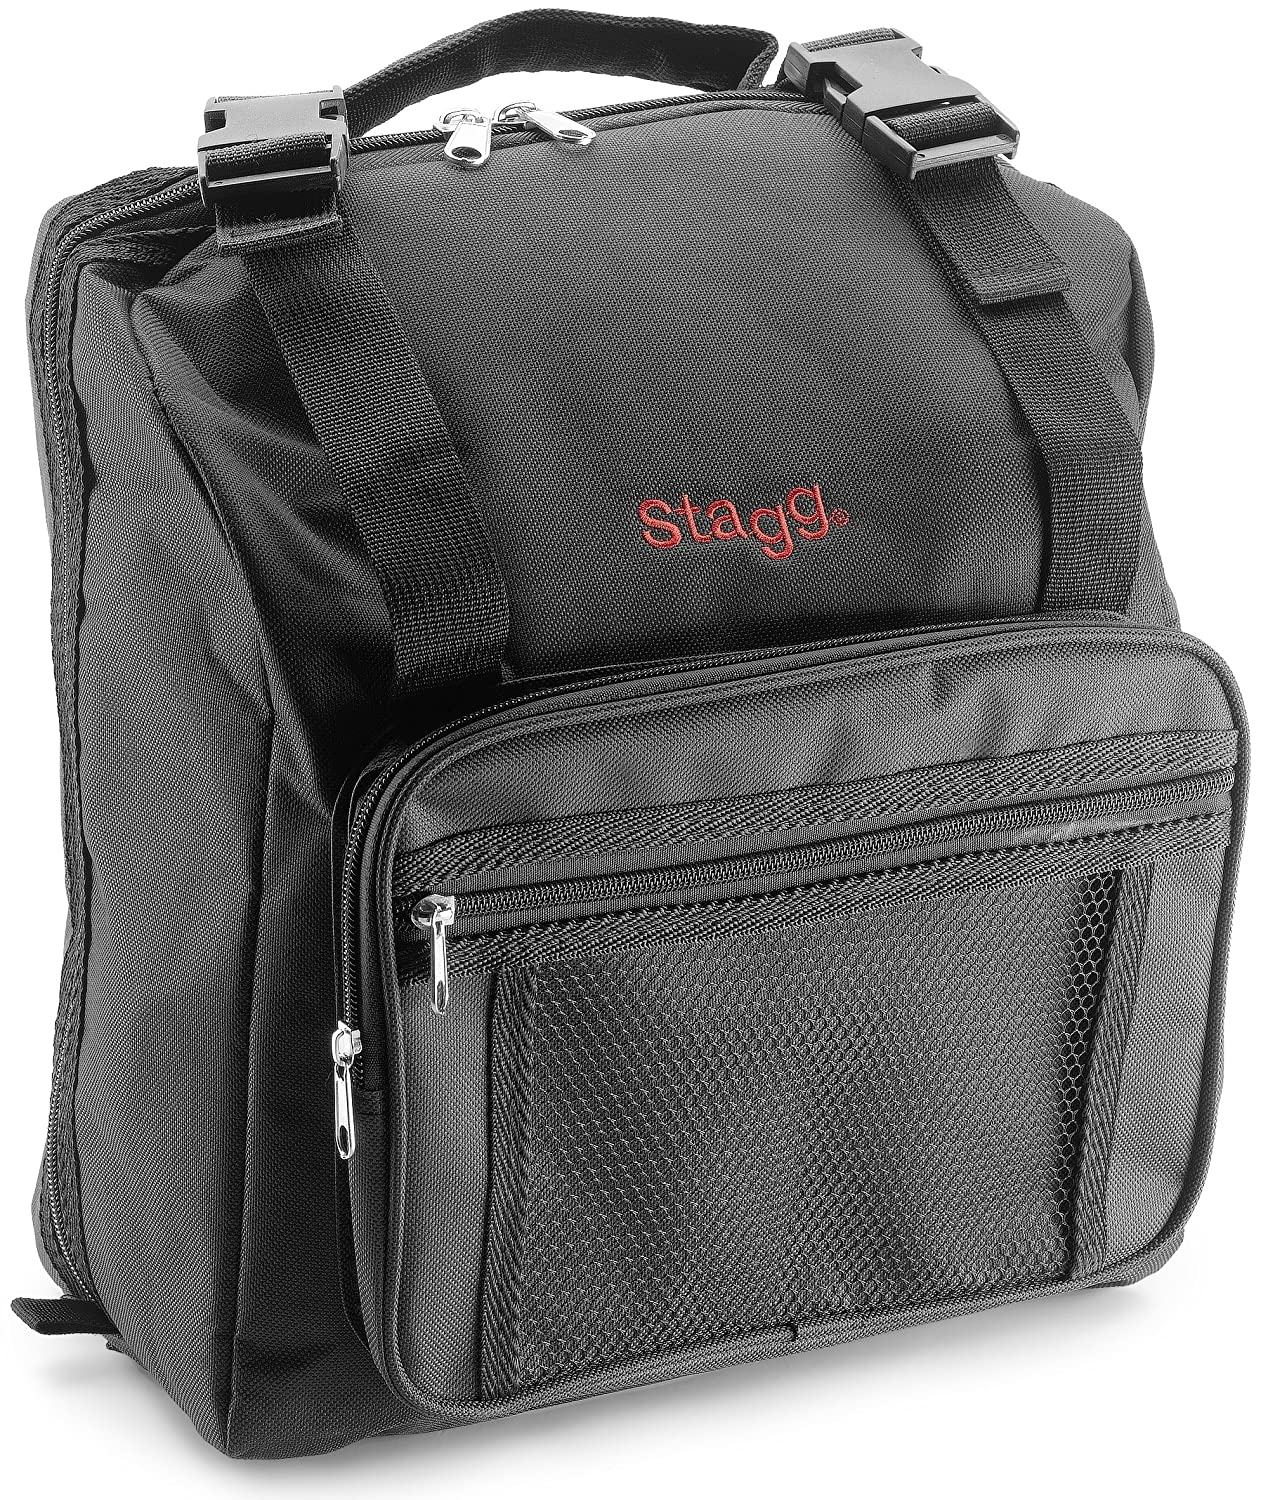 Stagg 25014618 Standard bag for Accordion ACB-320